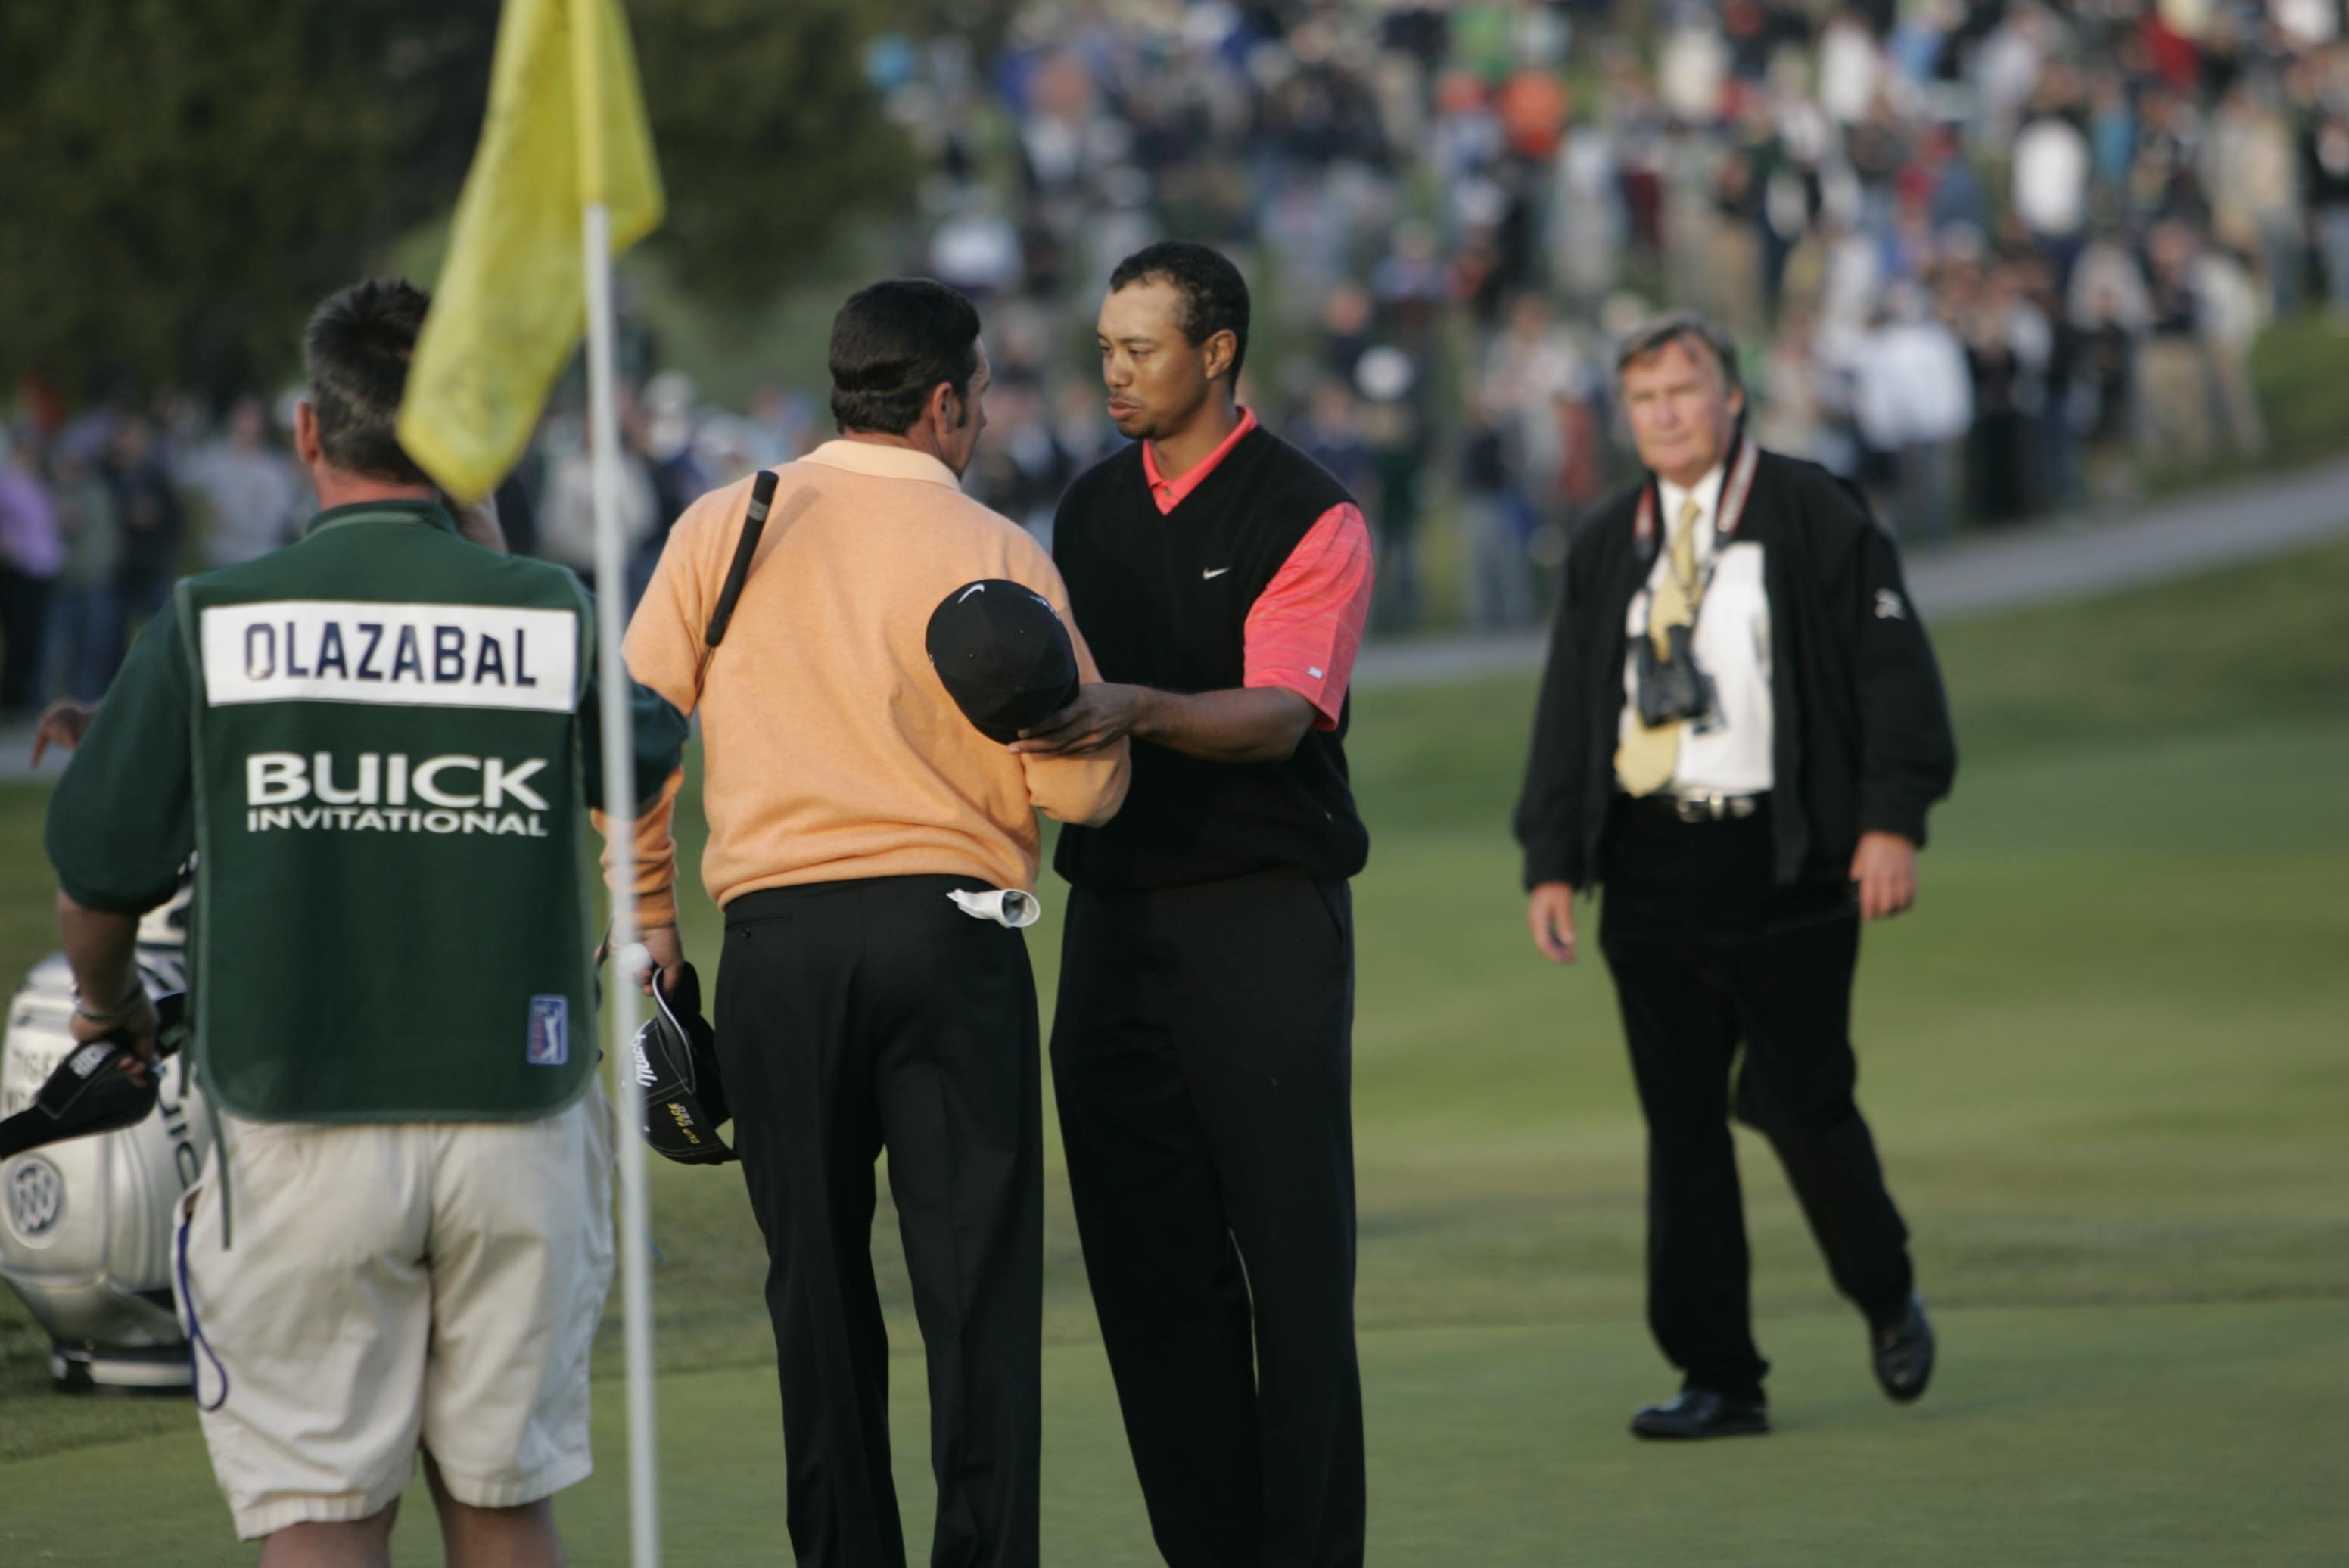 Tiger Woods 2006 Buick Invitational